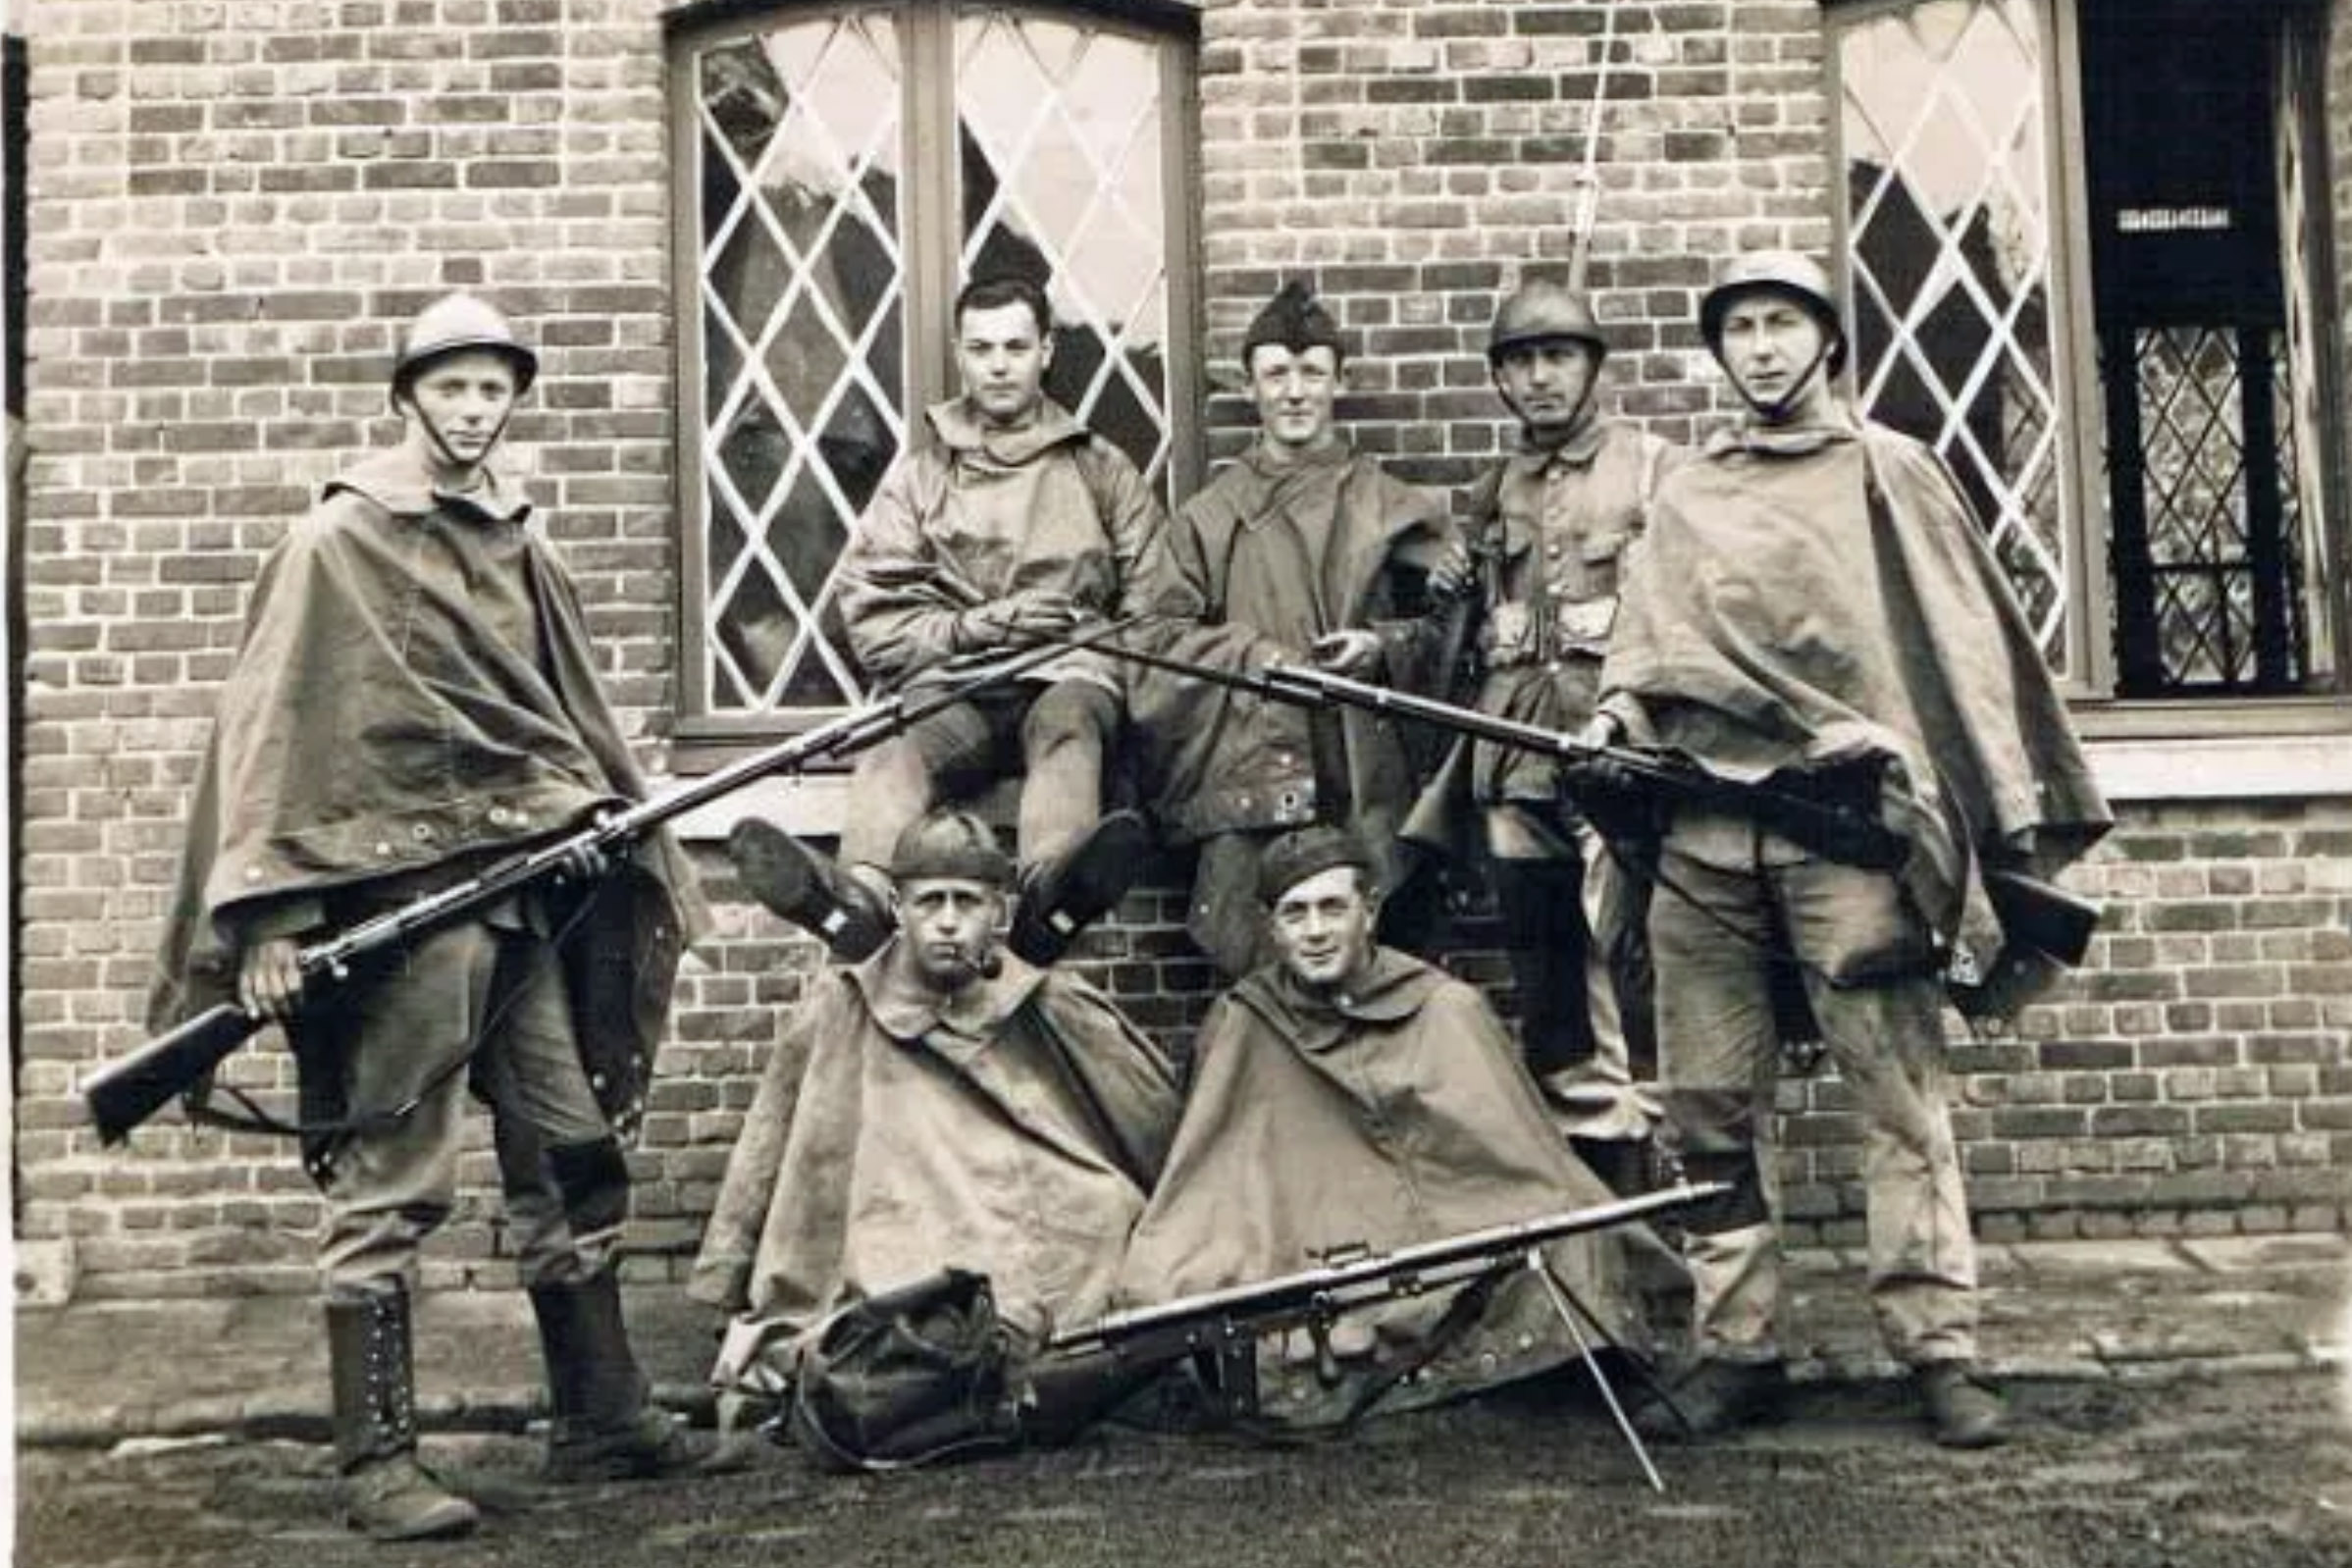 French or Belgian soldiers WWI, bayonets look Belgian